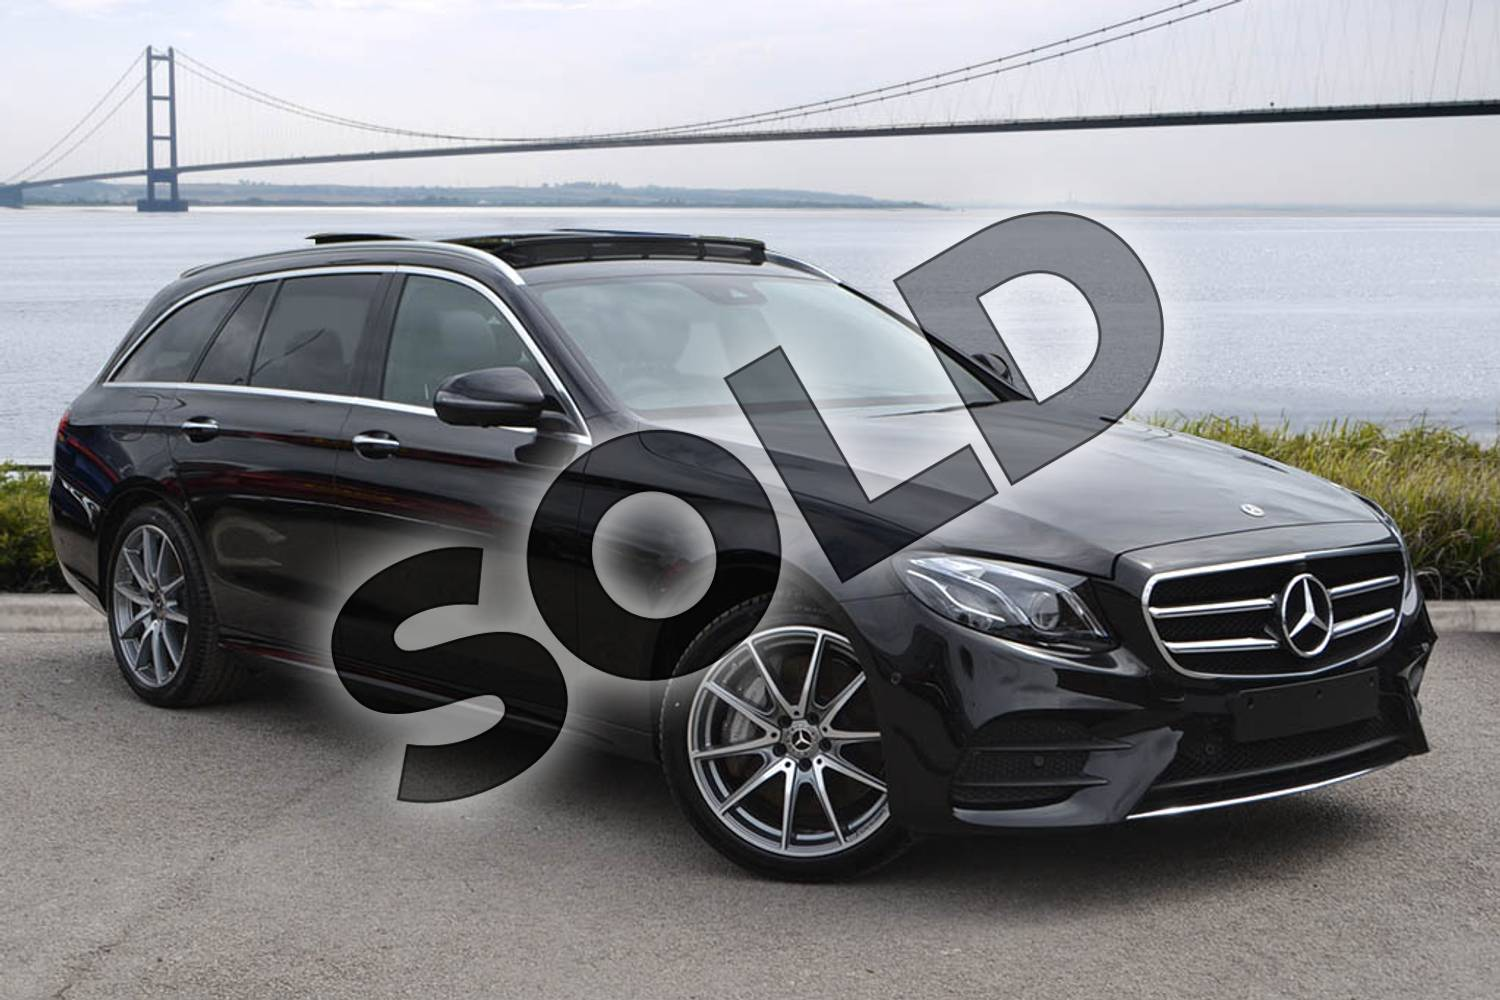 2020 Mercedes-Benz E Class Diesel Estate E350d AMG Line Night Ed Premium + 5dr 9G-Tronic in obsidian black metallic at Mercedes-Benz of Hull